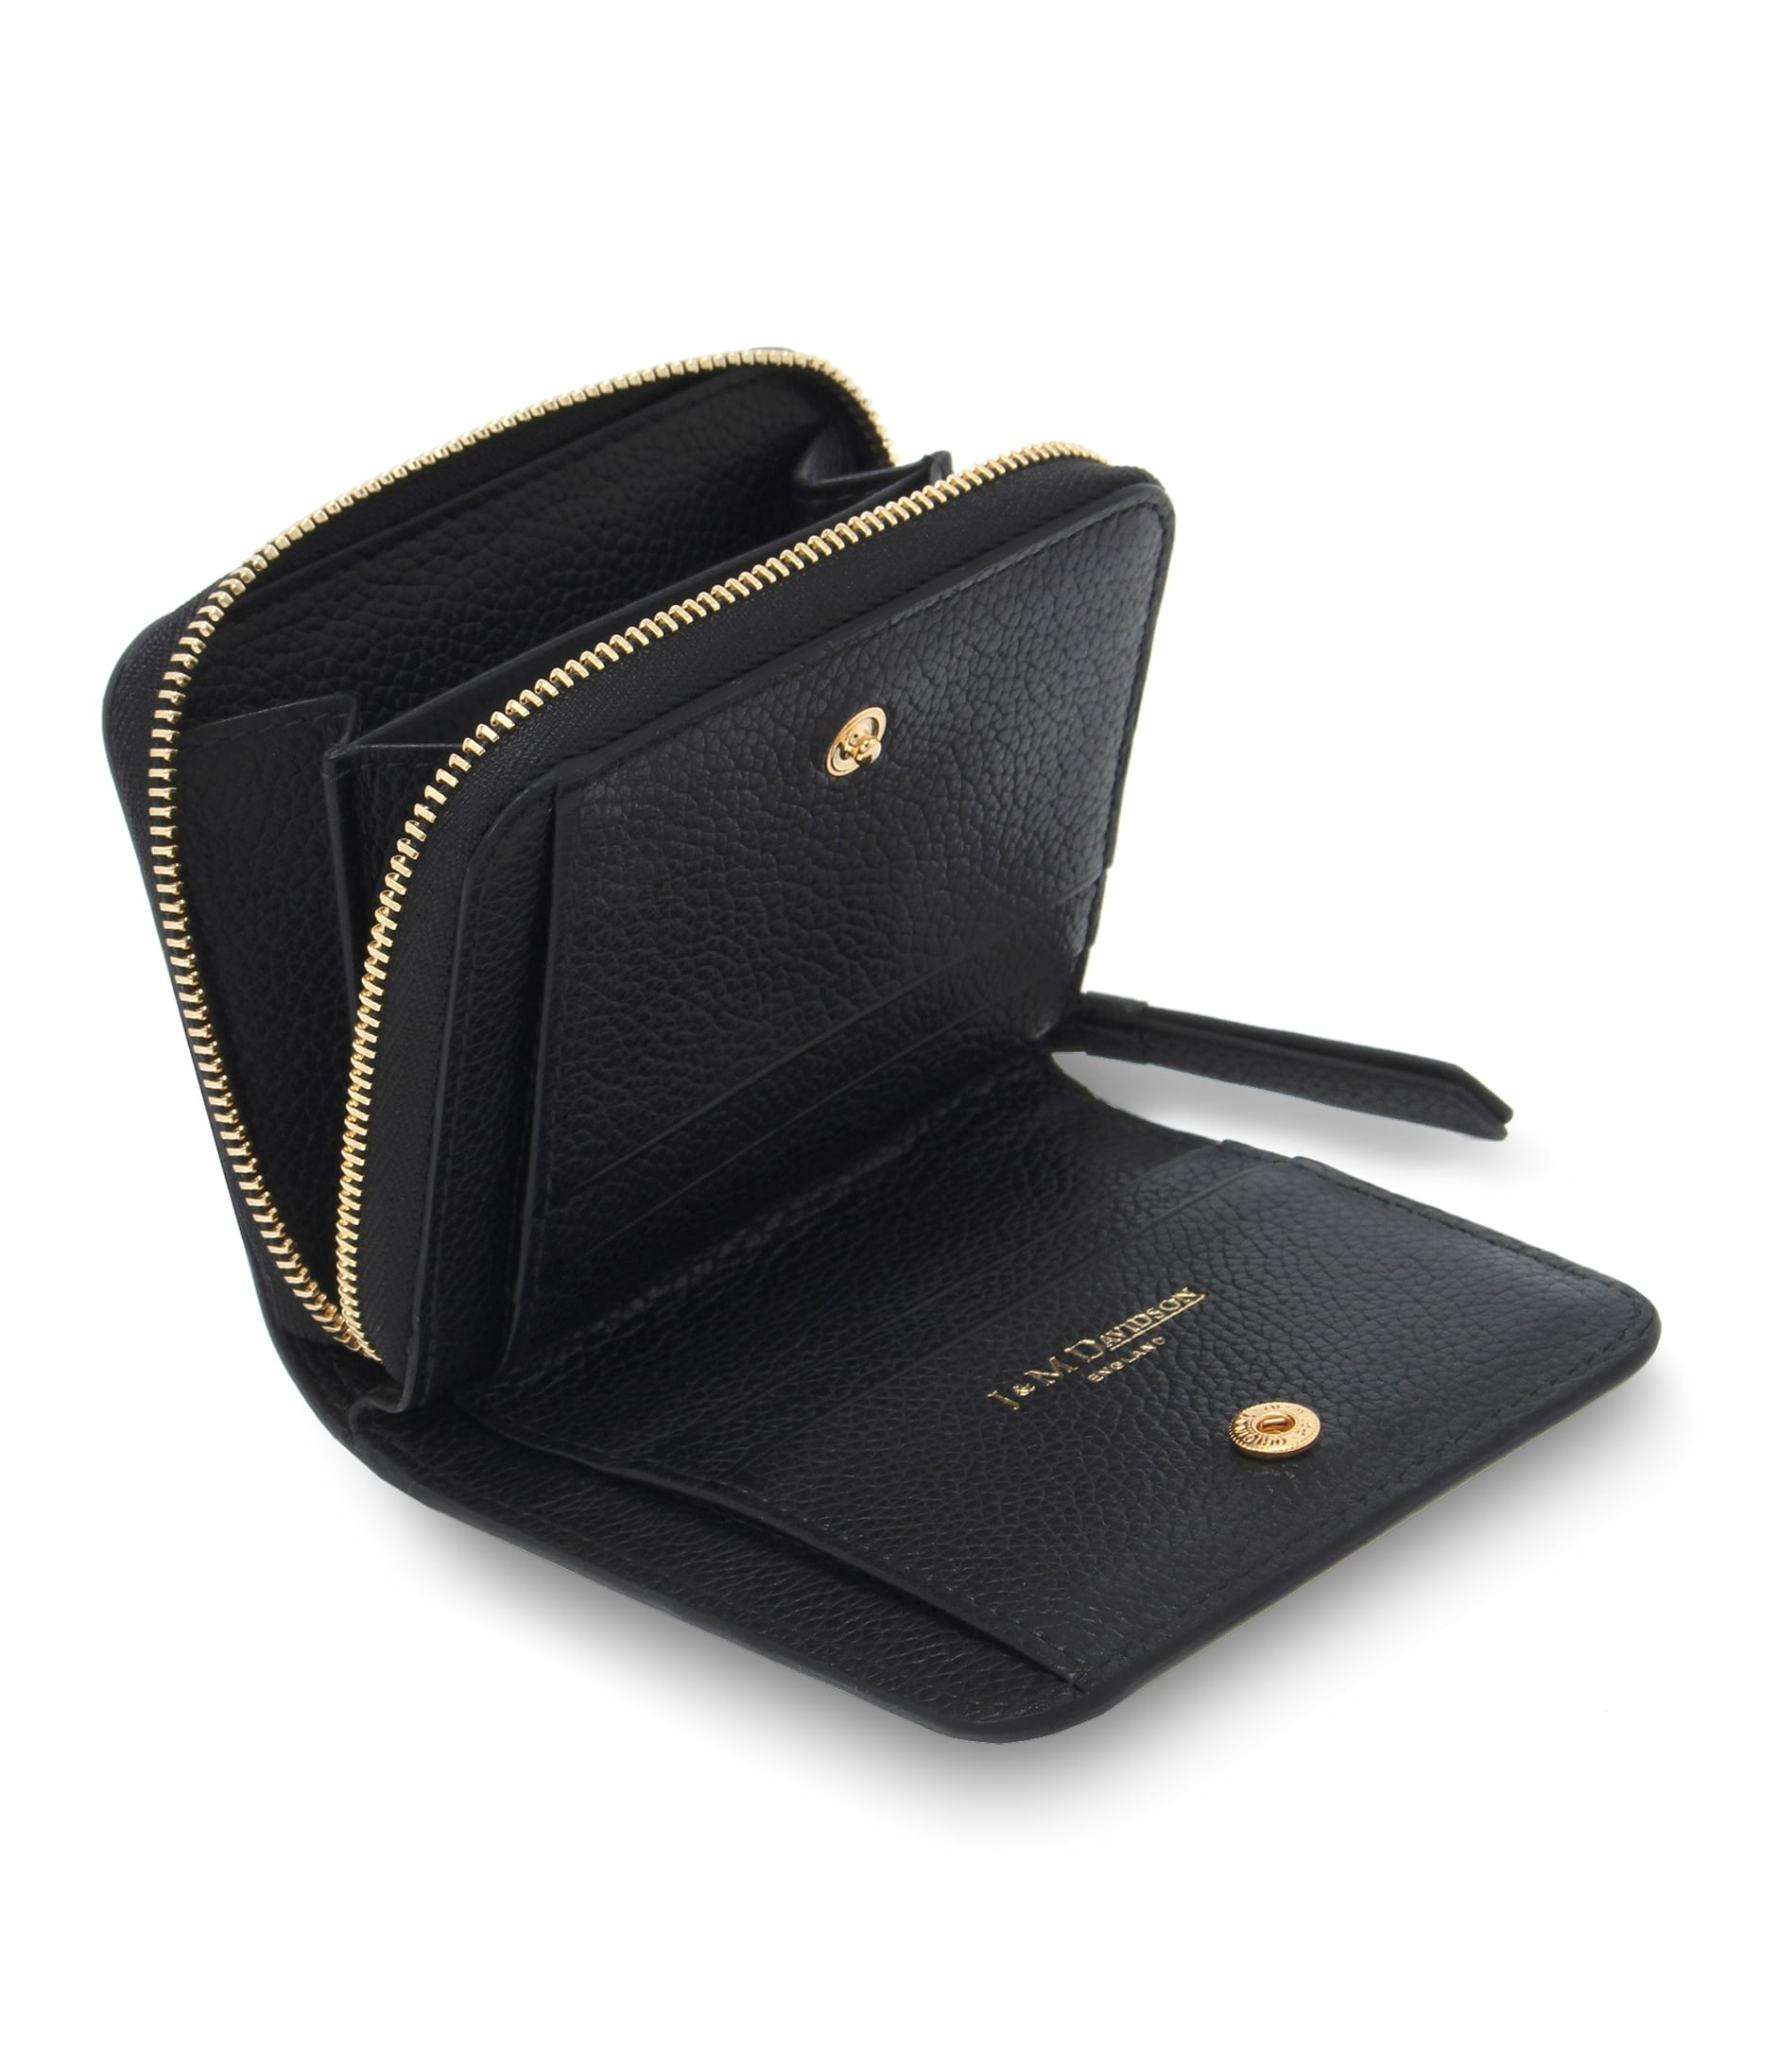 COIN/CARD WALLET 詳細画像 BLACK 3